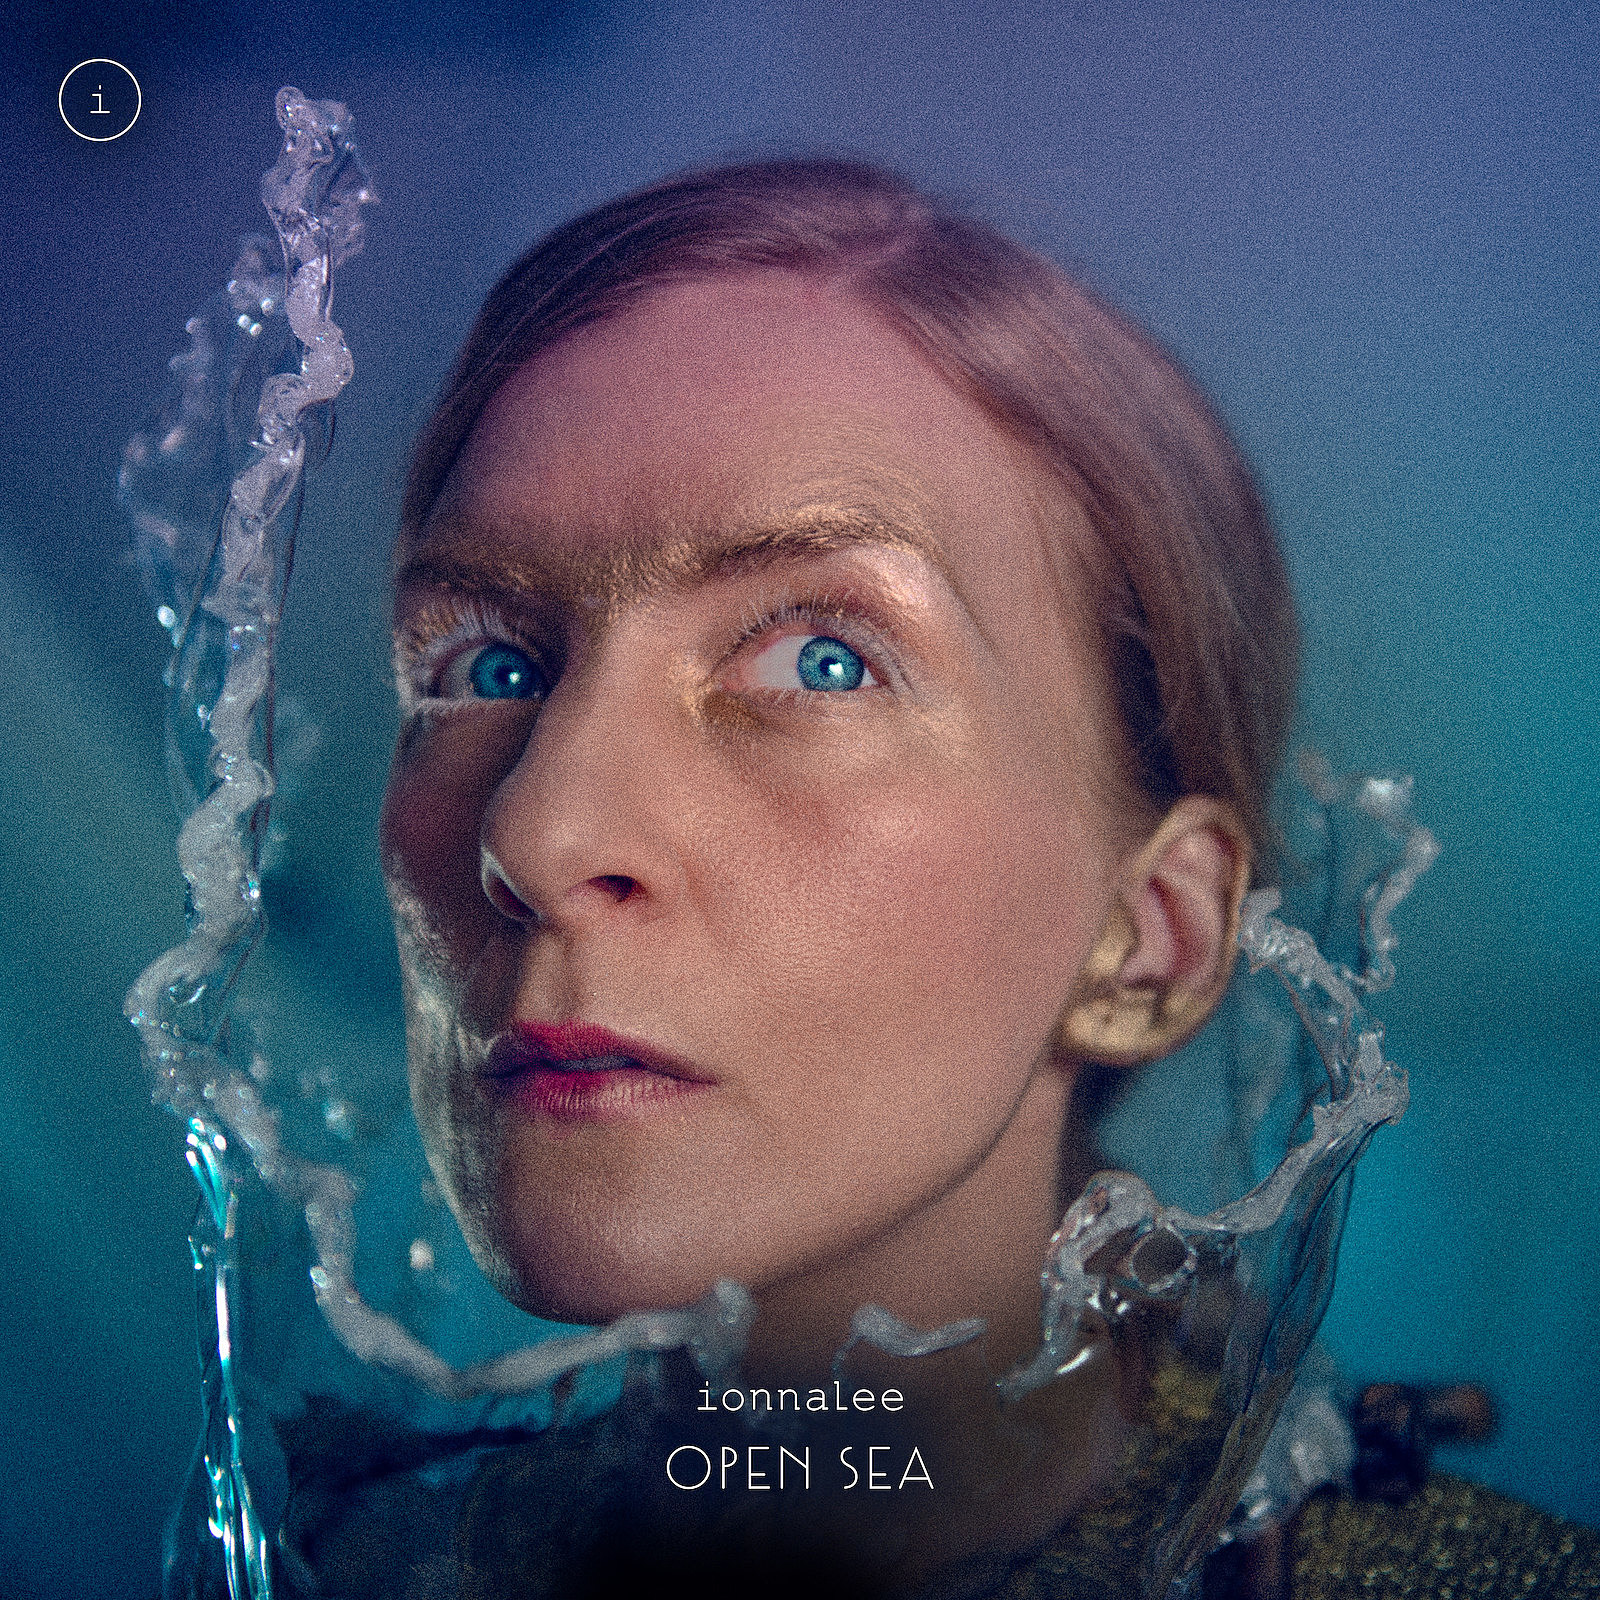 ionnalee Open Sea